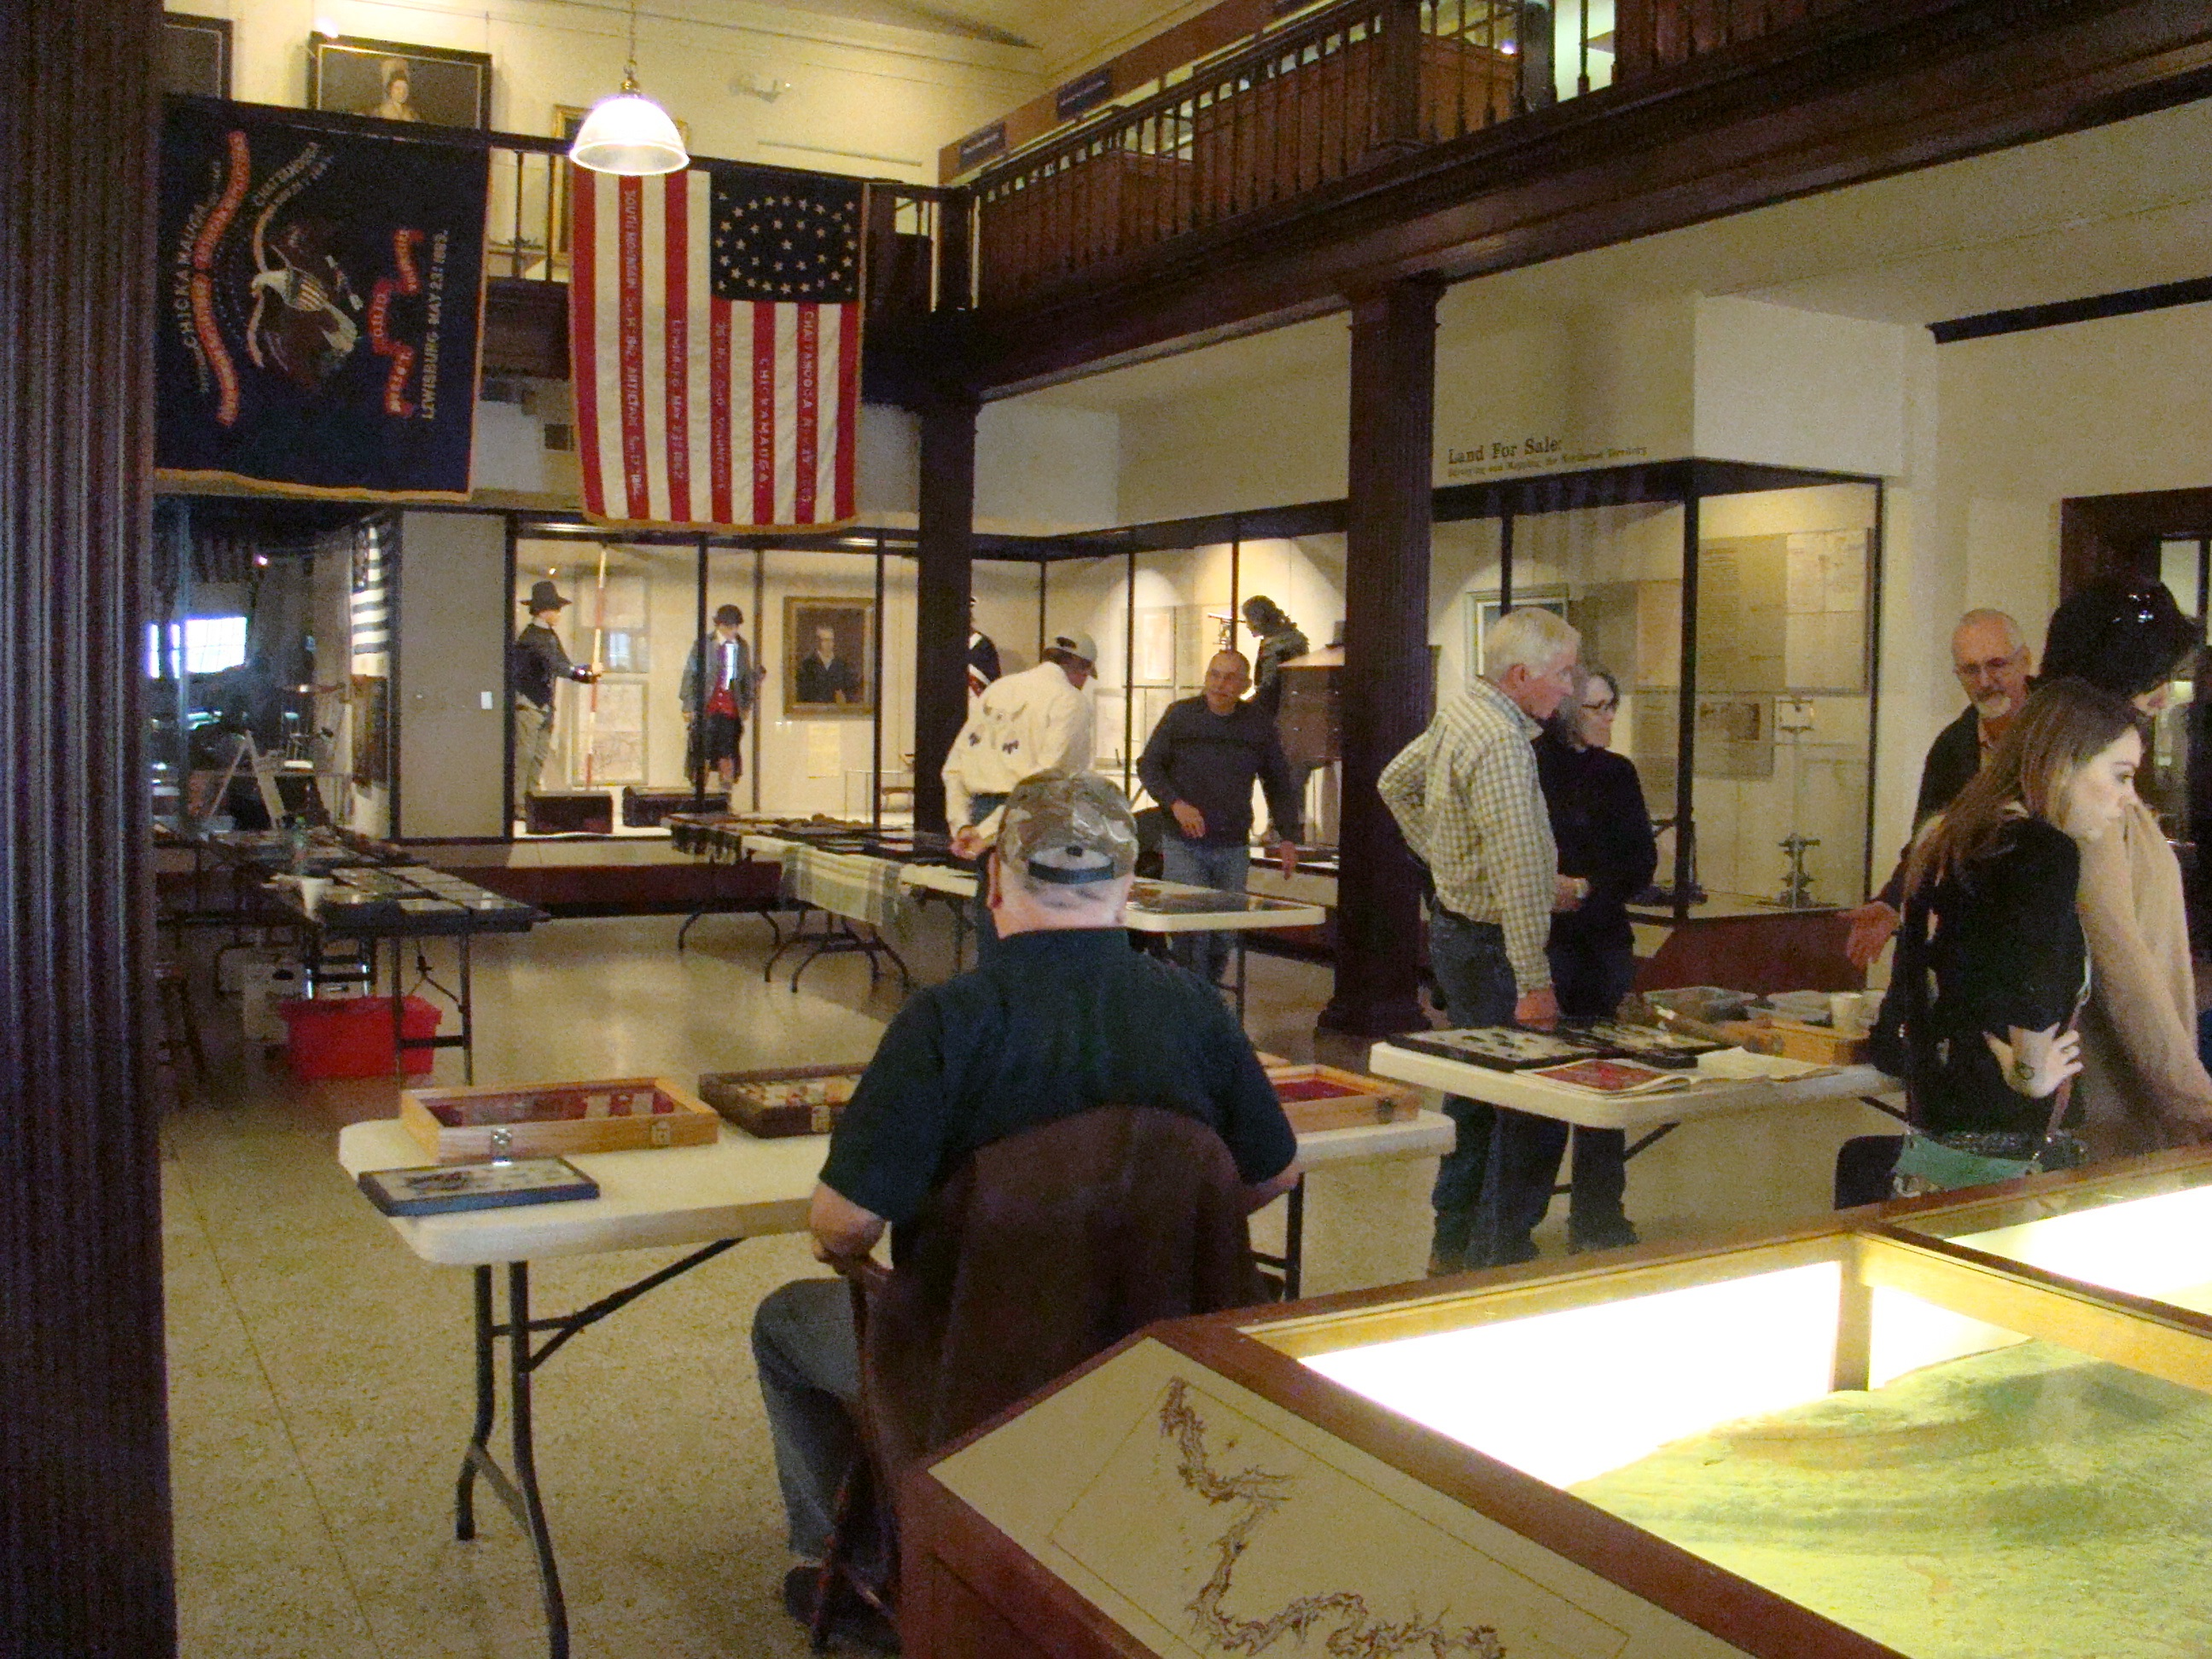 Archaeology displays filled the lobby of Campus Martius Museum.